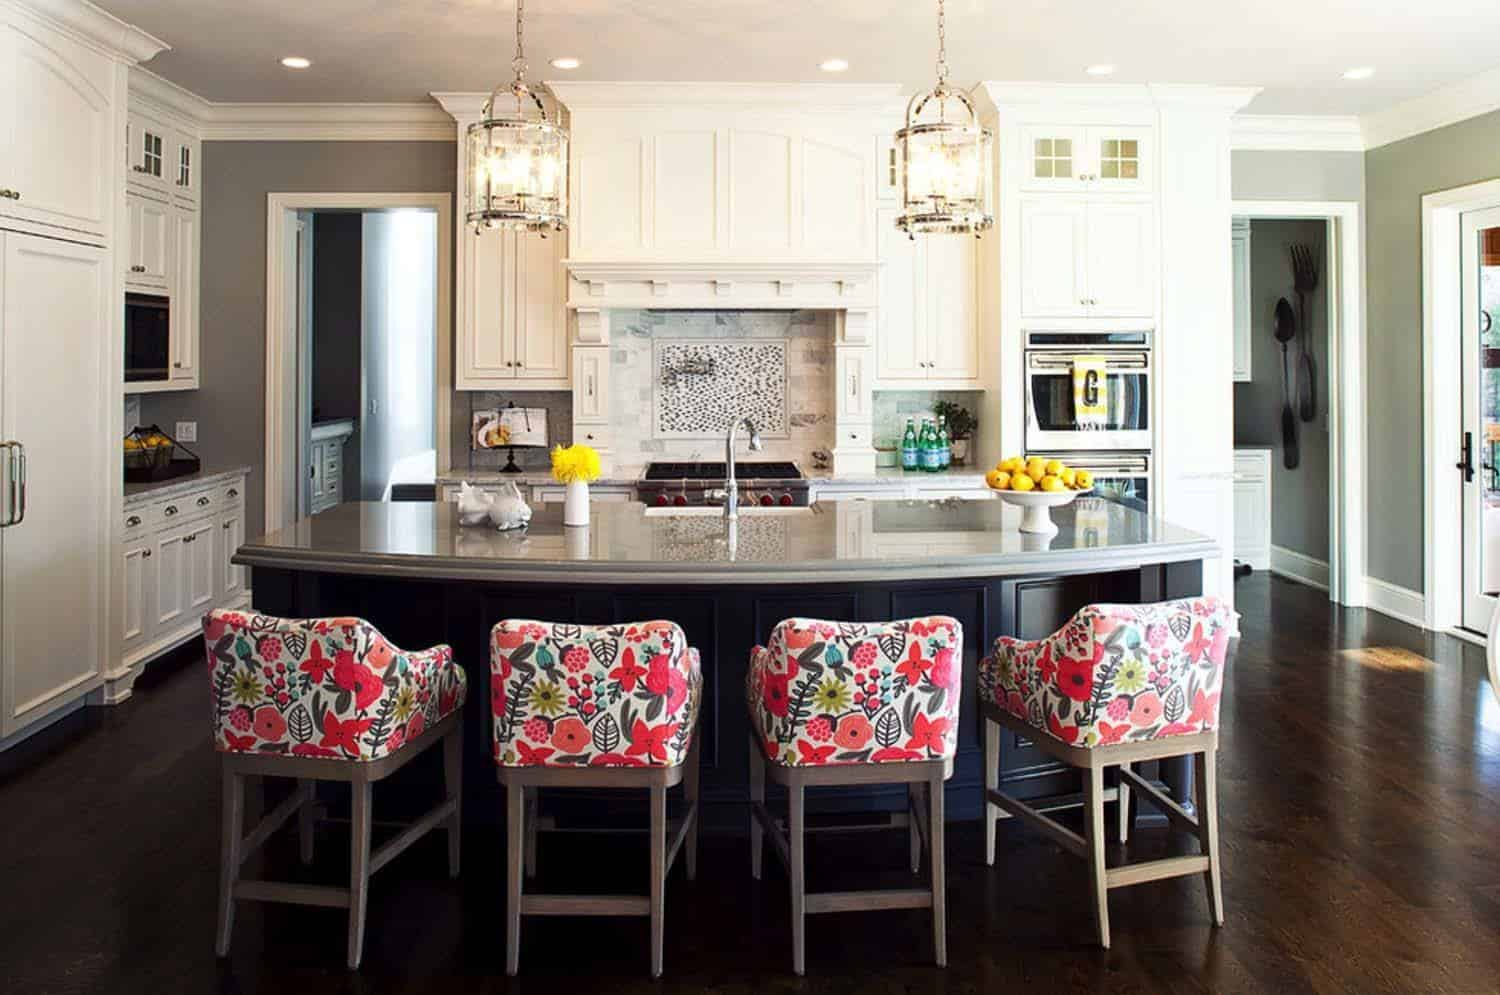 Kitchen Island Ideas-12-1 Kindesign